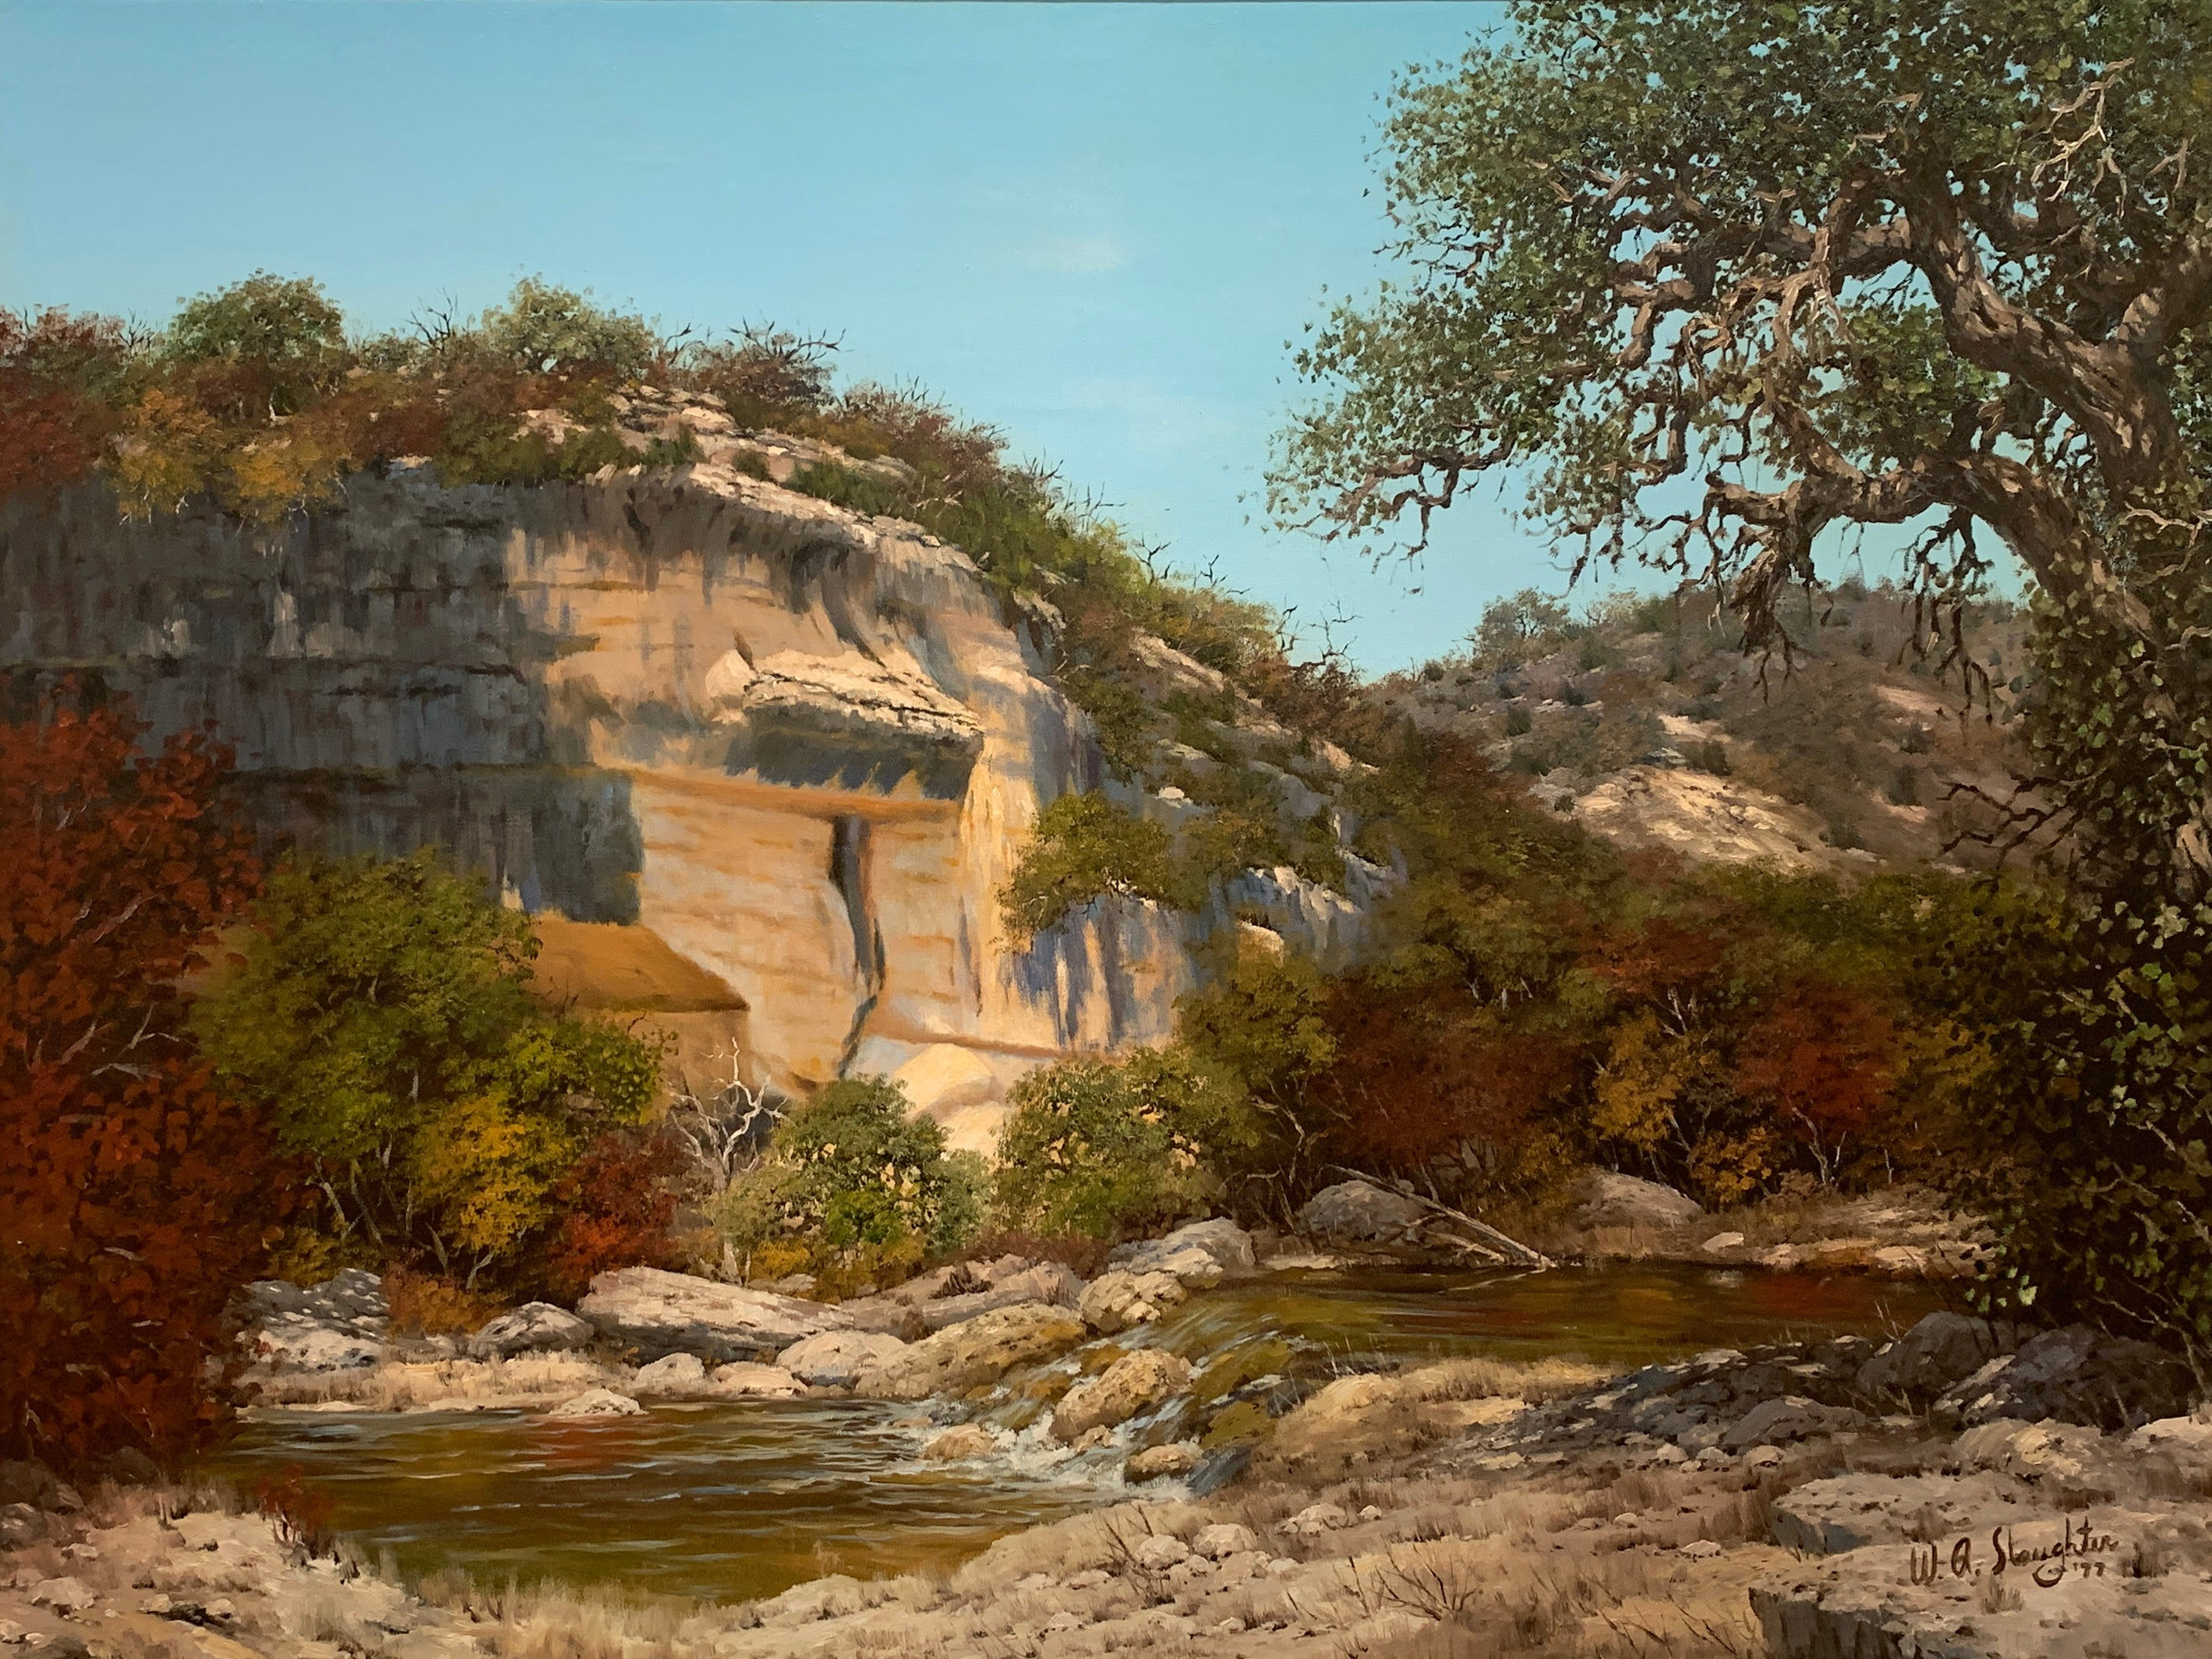 """""""Shadows in Rock Formation"""", W.A. Slaughter, Original, Oil on Canvas, 36x48 in."""